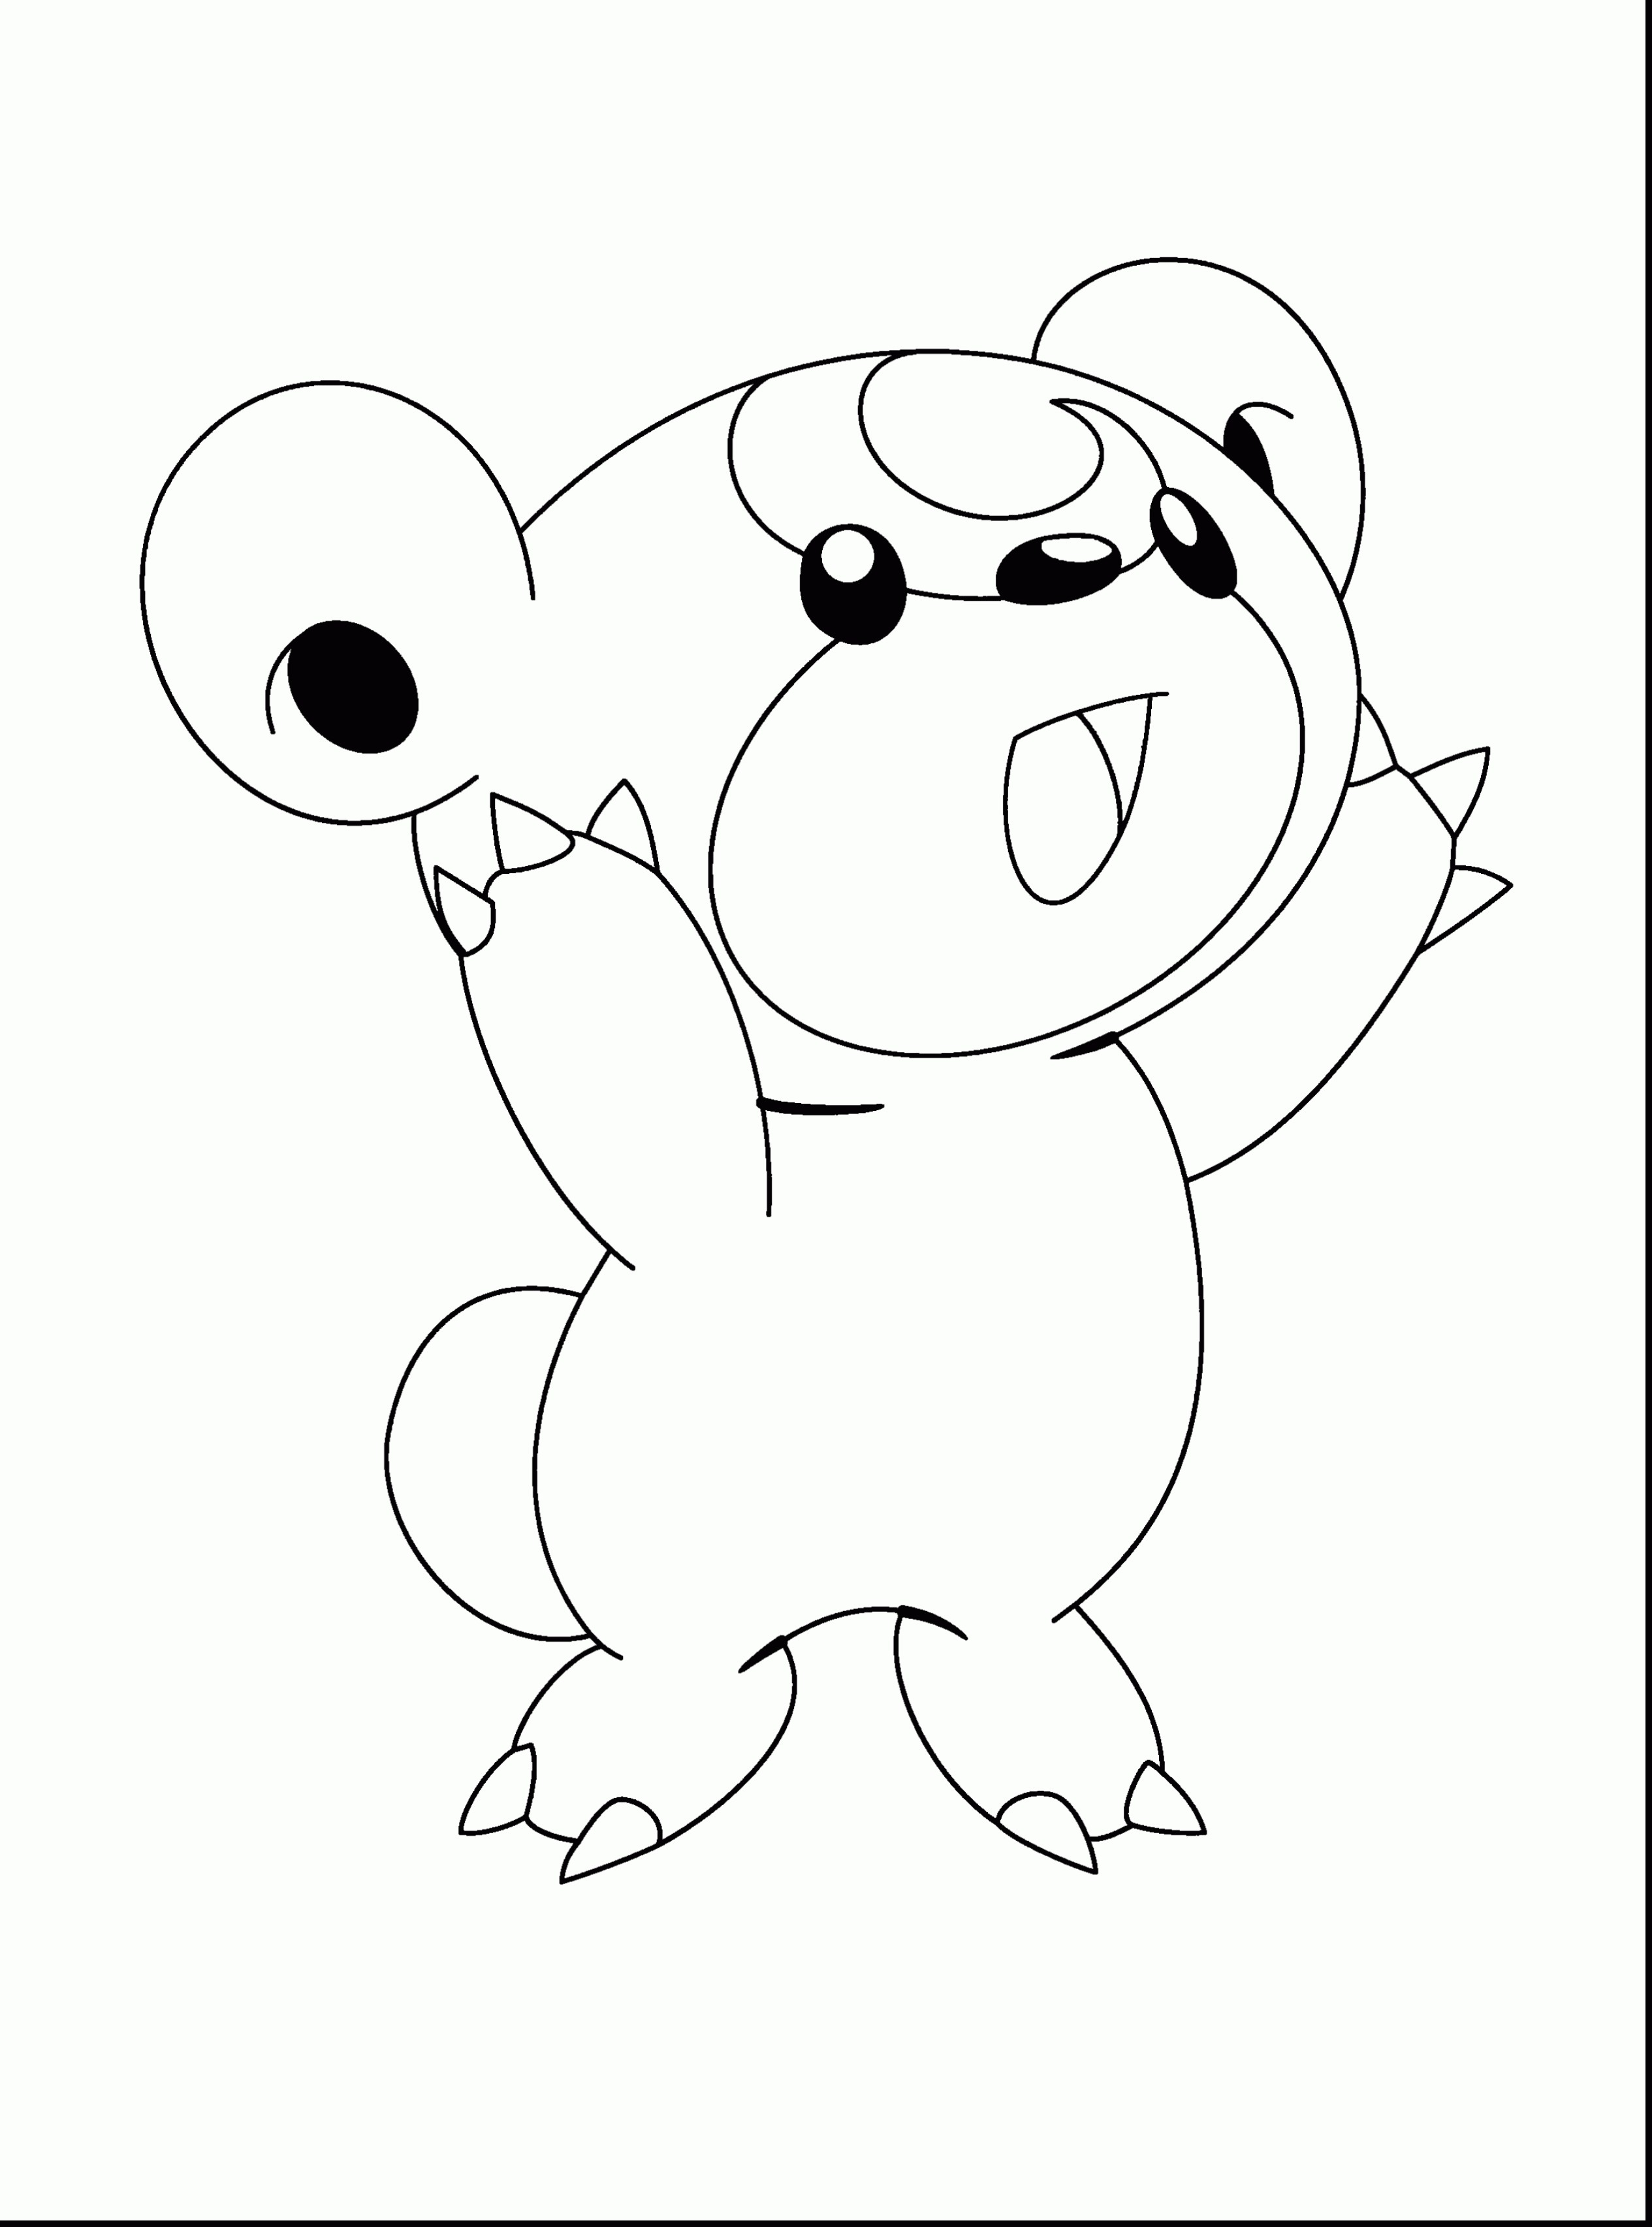 Pokemon Eevee Evolutions Coloring Pages The Best Free Eevee Coloring Page Images Download From 505 Free